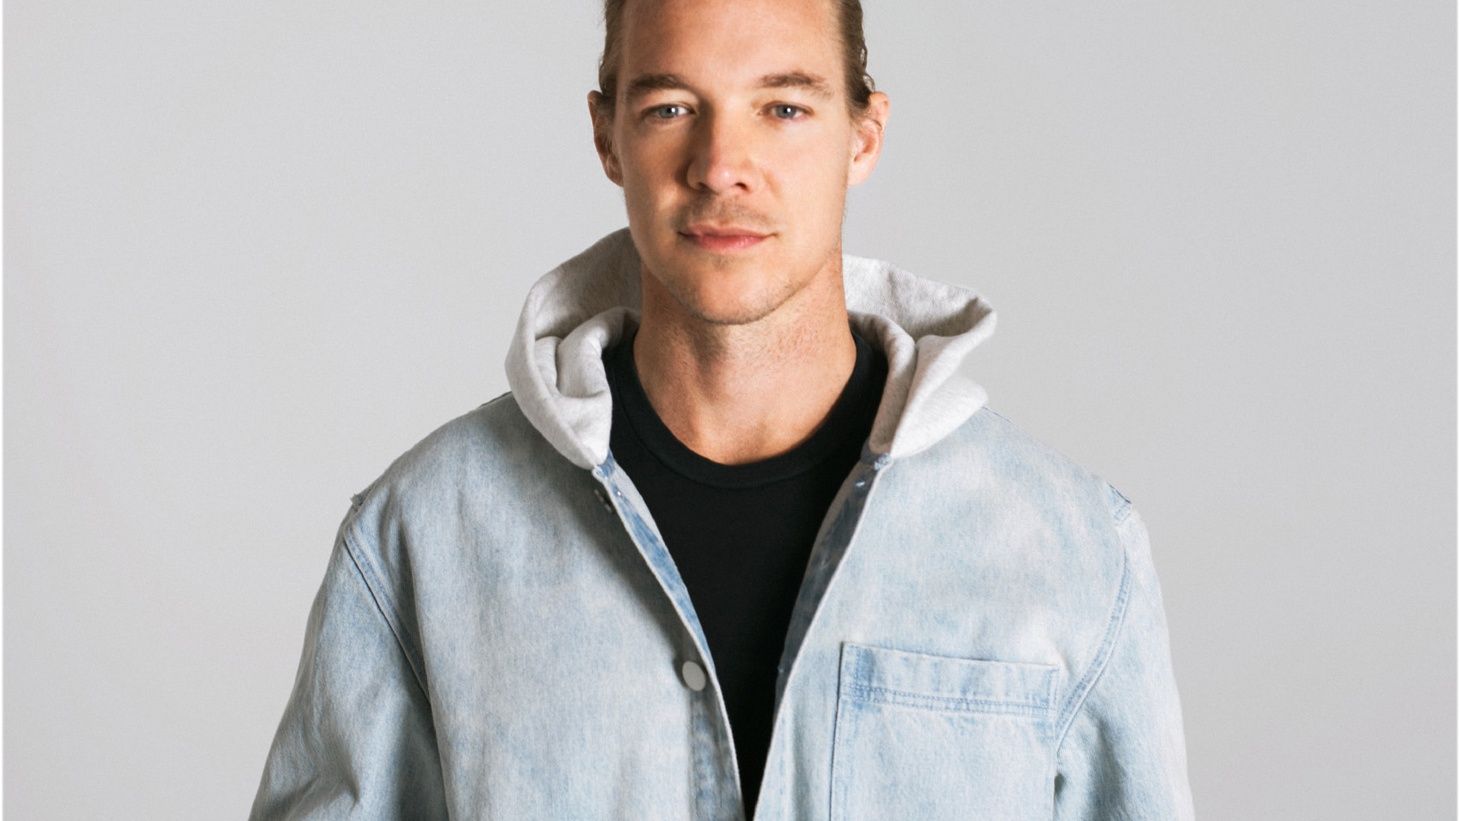 Global superstar and Major Lazer founding member Diplo had an amazing year in 2017. He launched a documentary, released an album, hosted his first annual Mad Decent festival, and issued an EP.